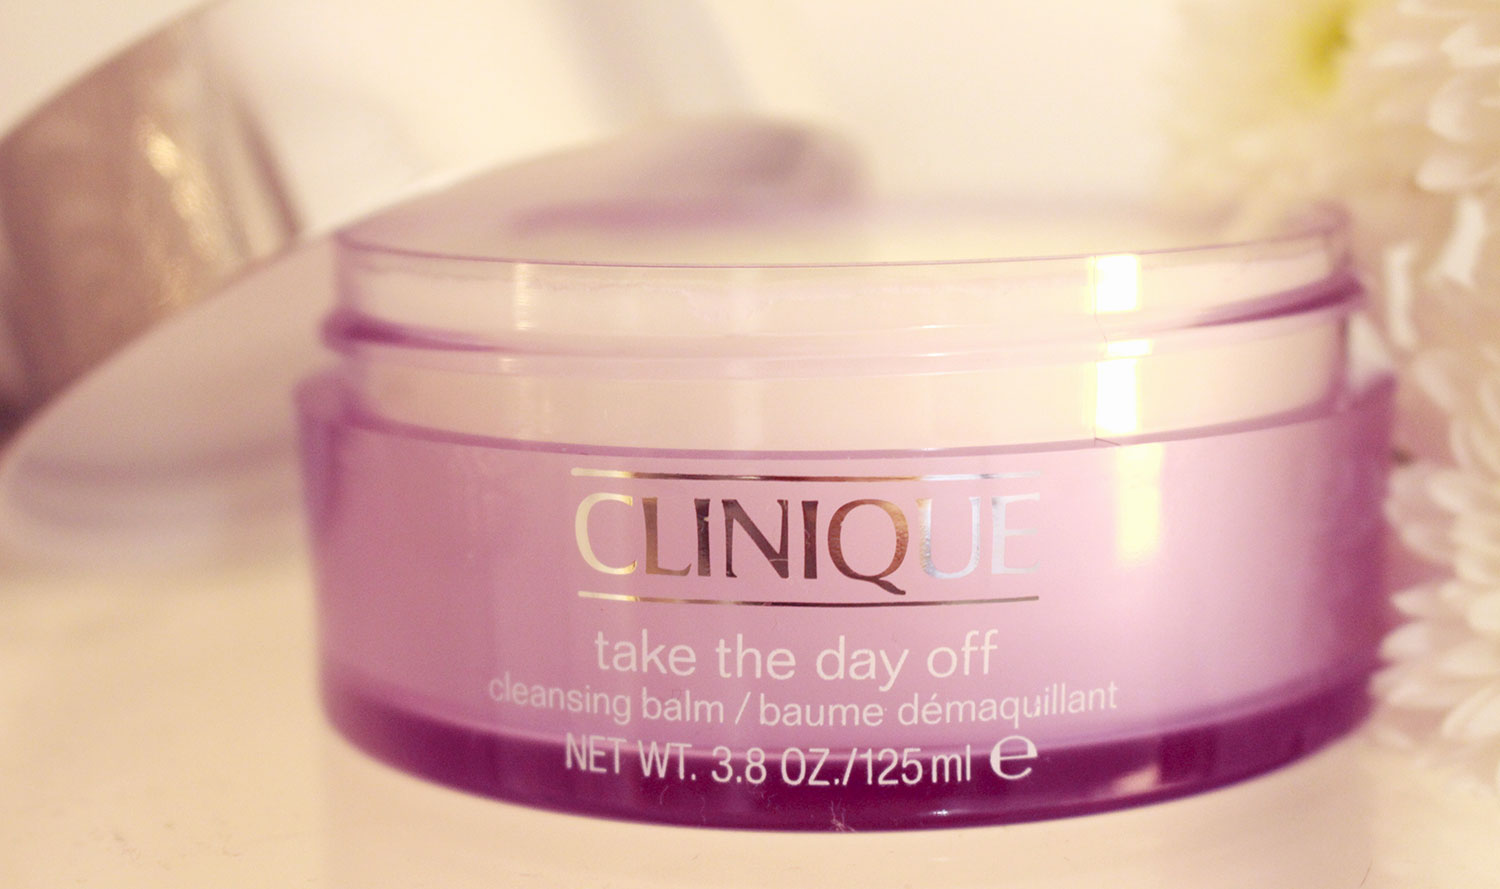 Clinique : Take the day off